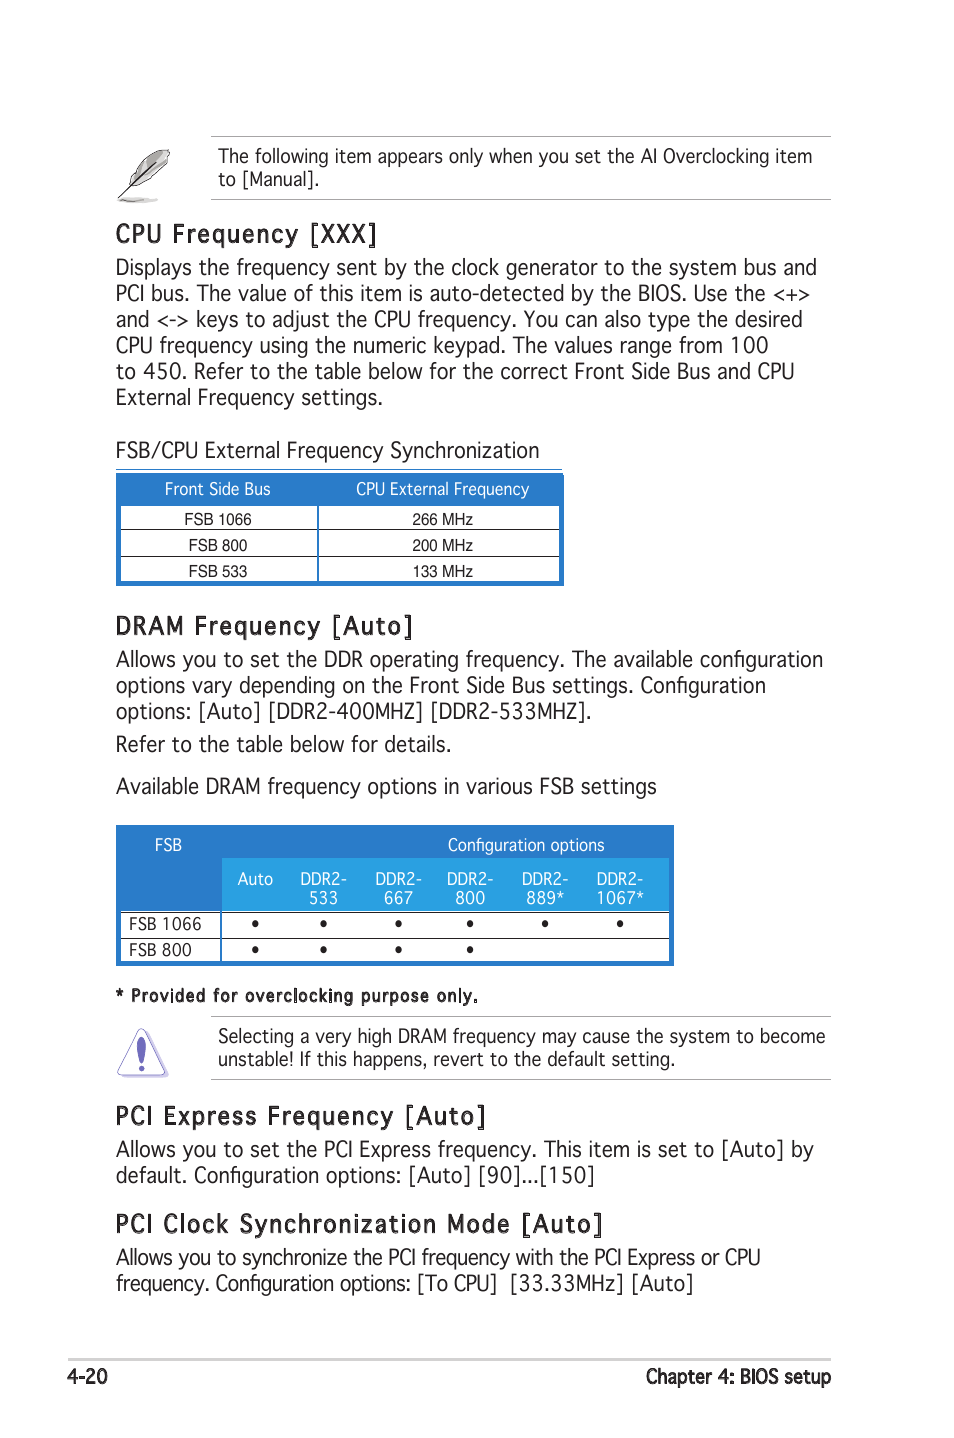 Cpu frequency [xxx, Pci express frequency [auto, Pci clock